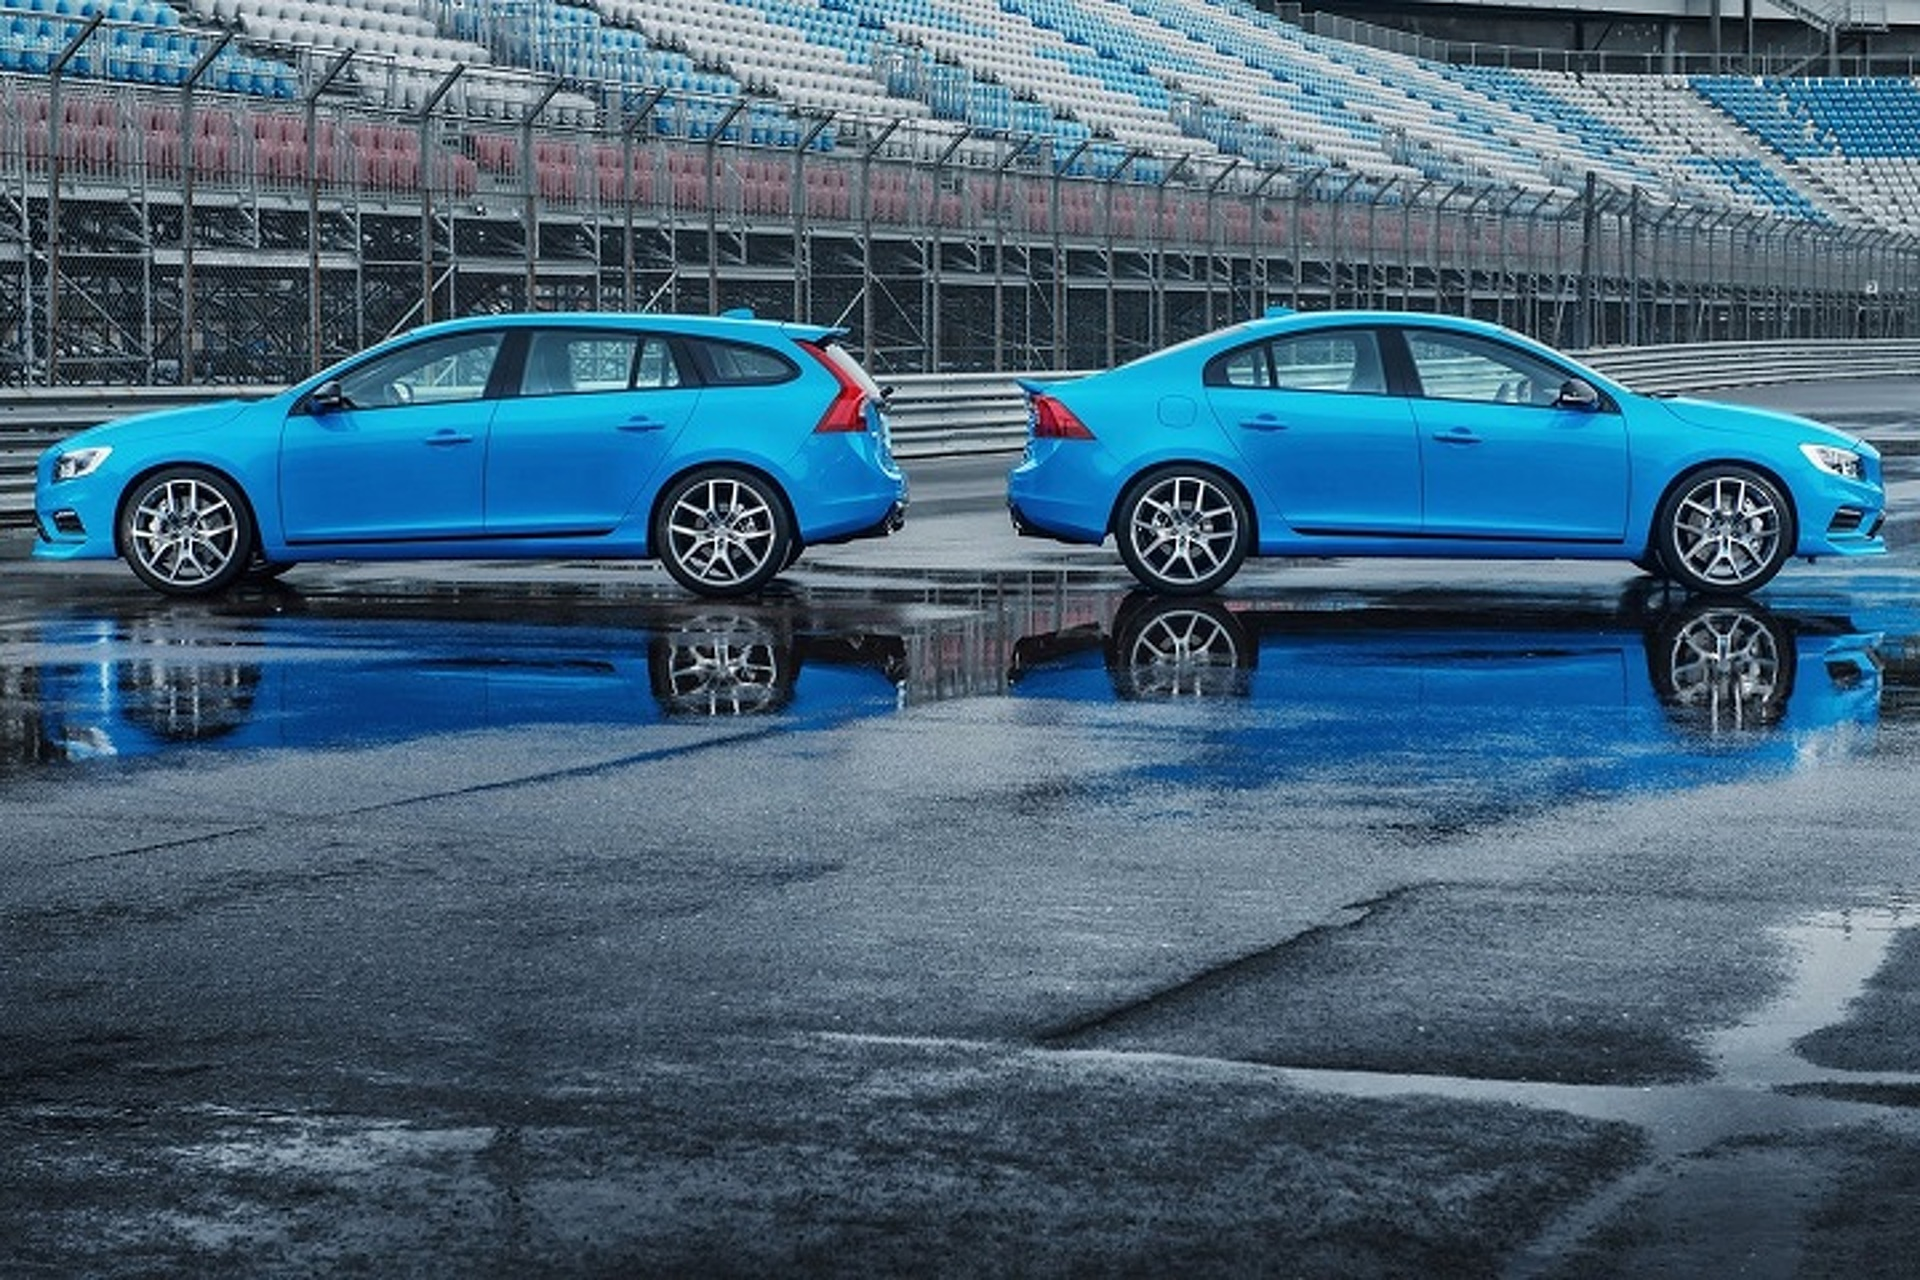 Volvo Officially Acquires Polestar As Performance Arm